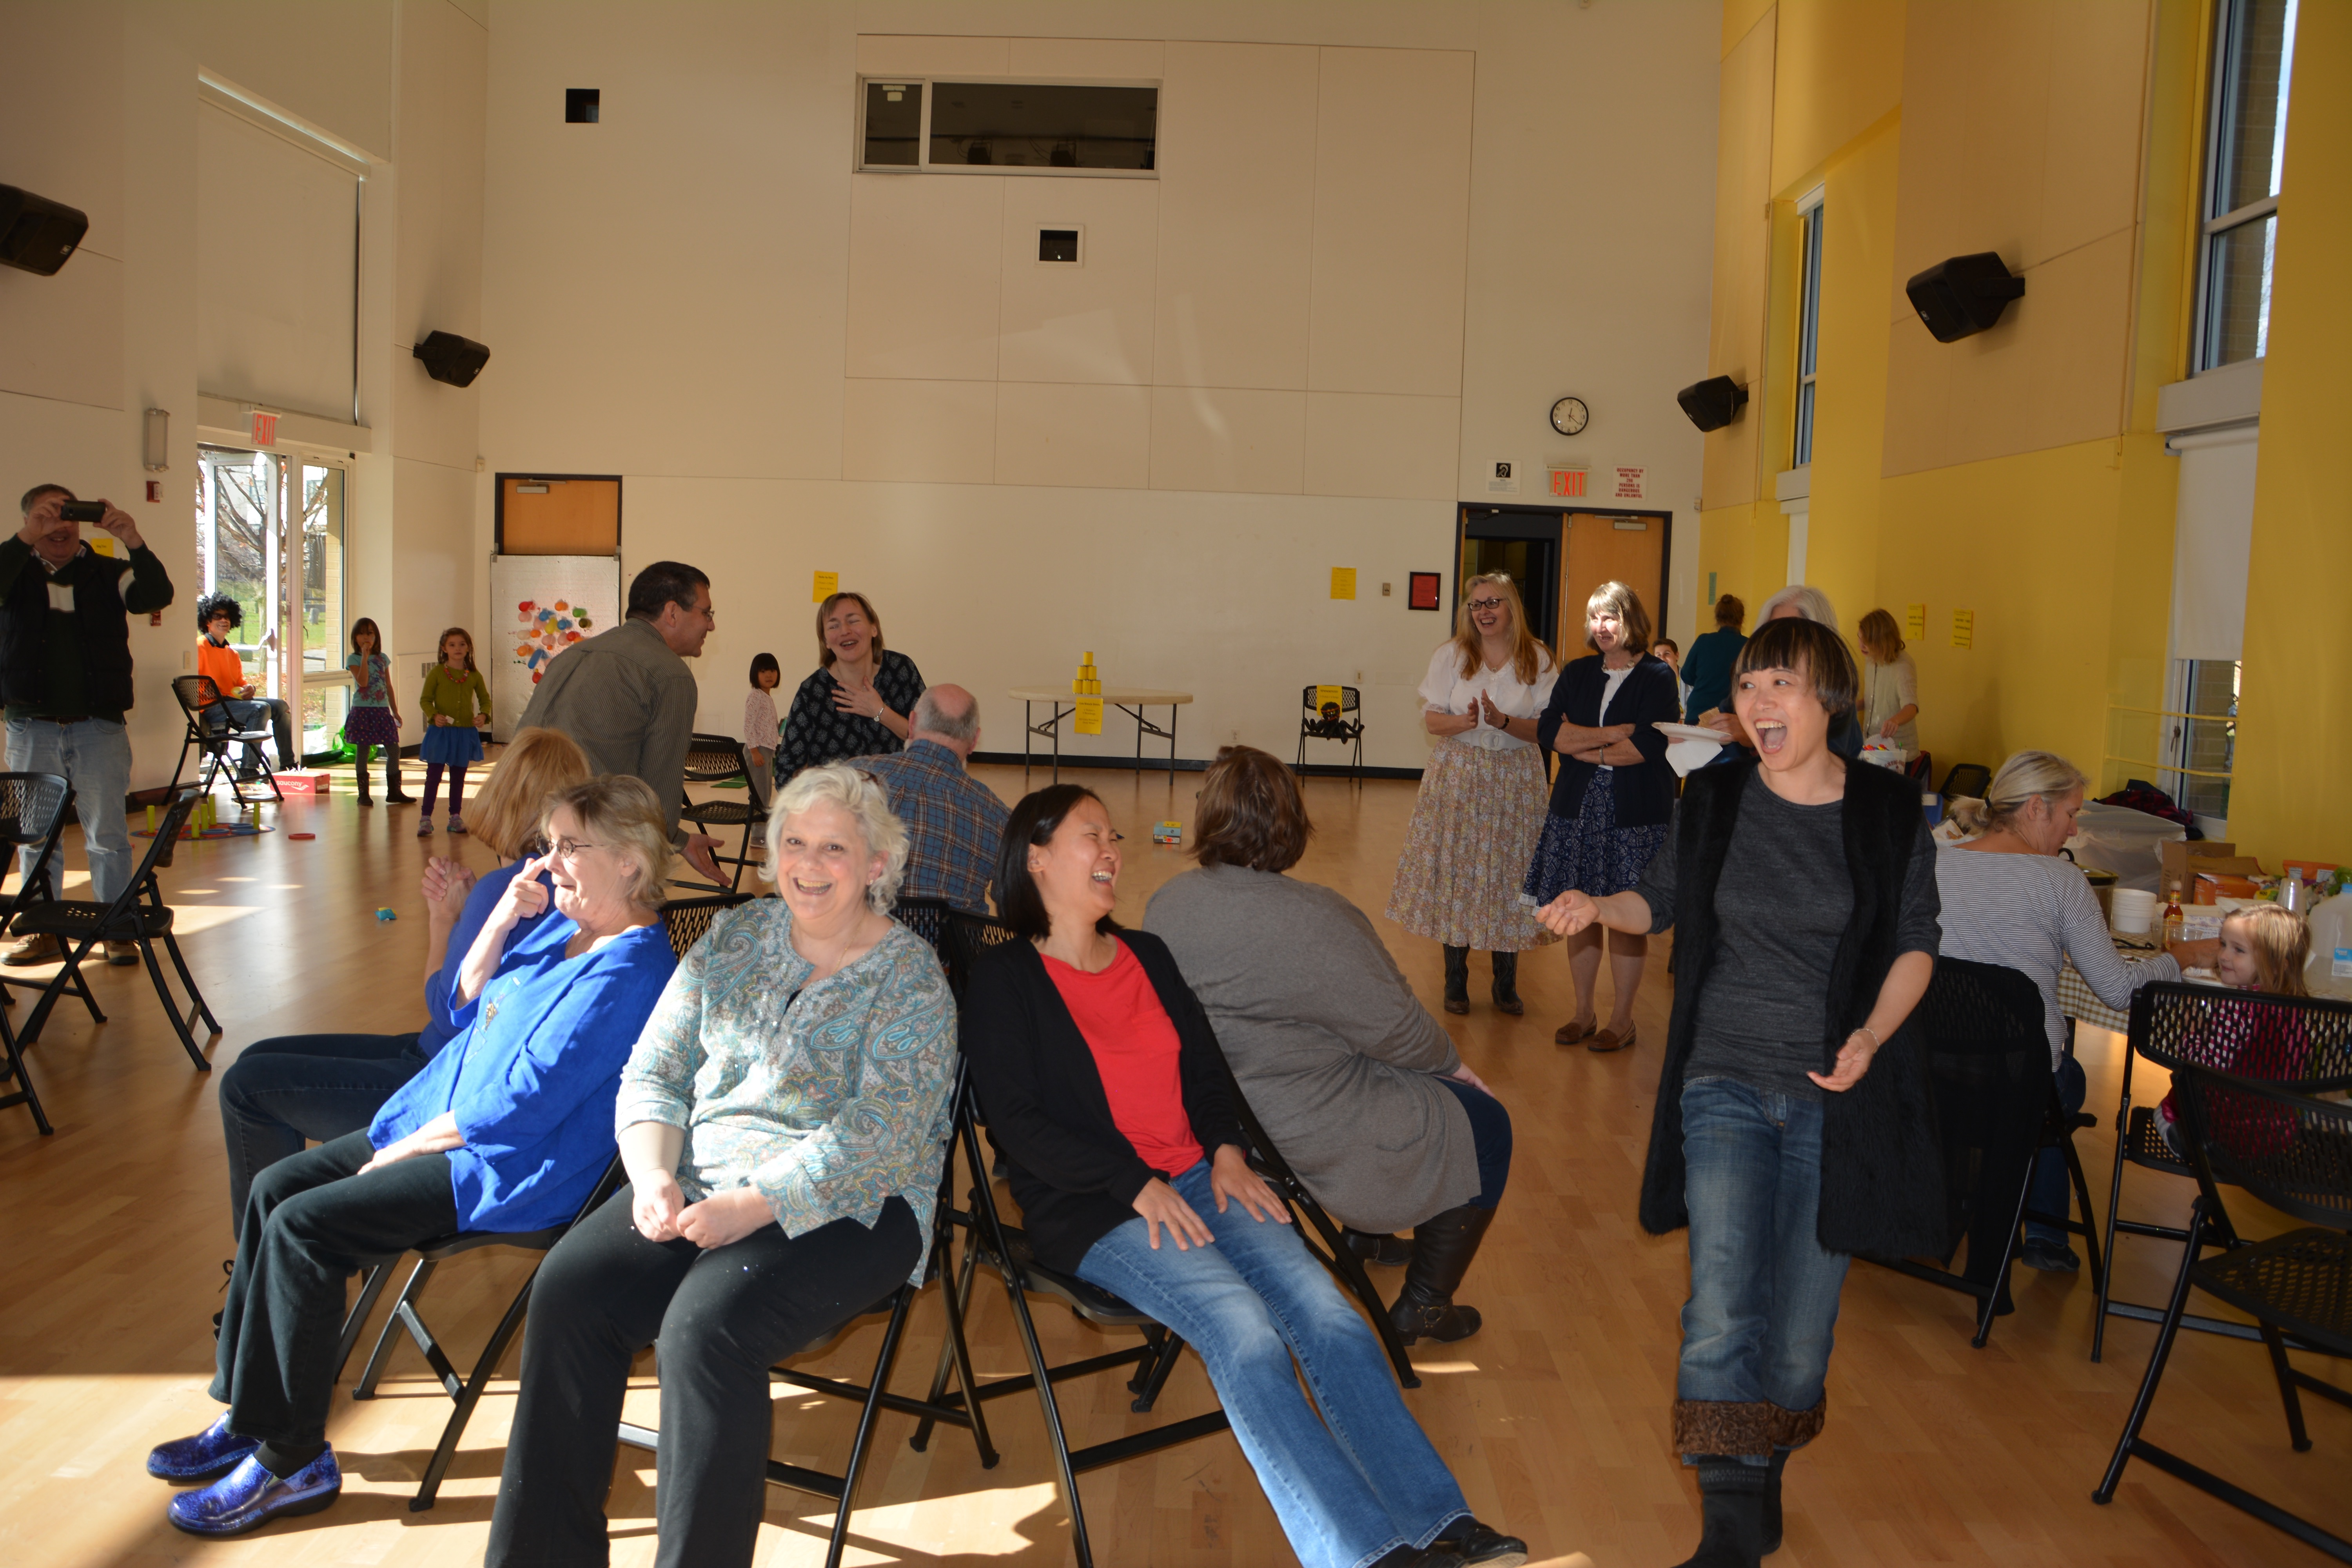 Musical chairs speed dating